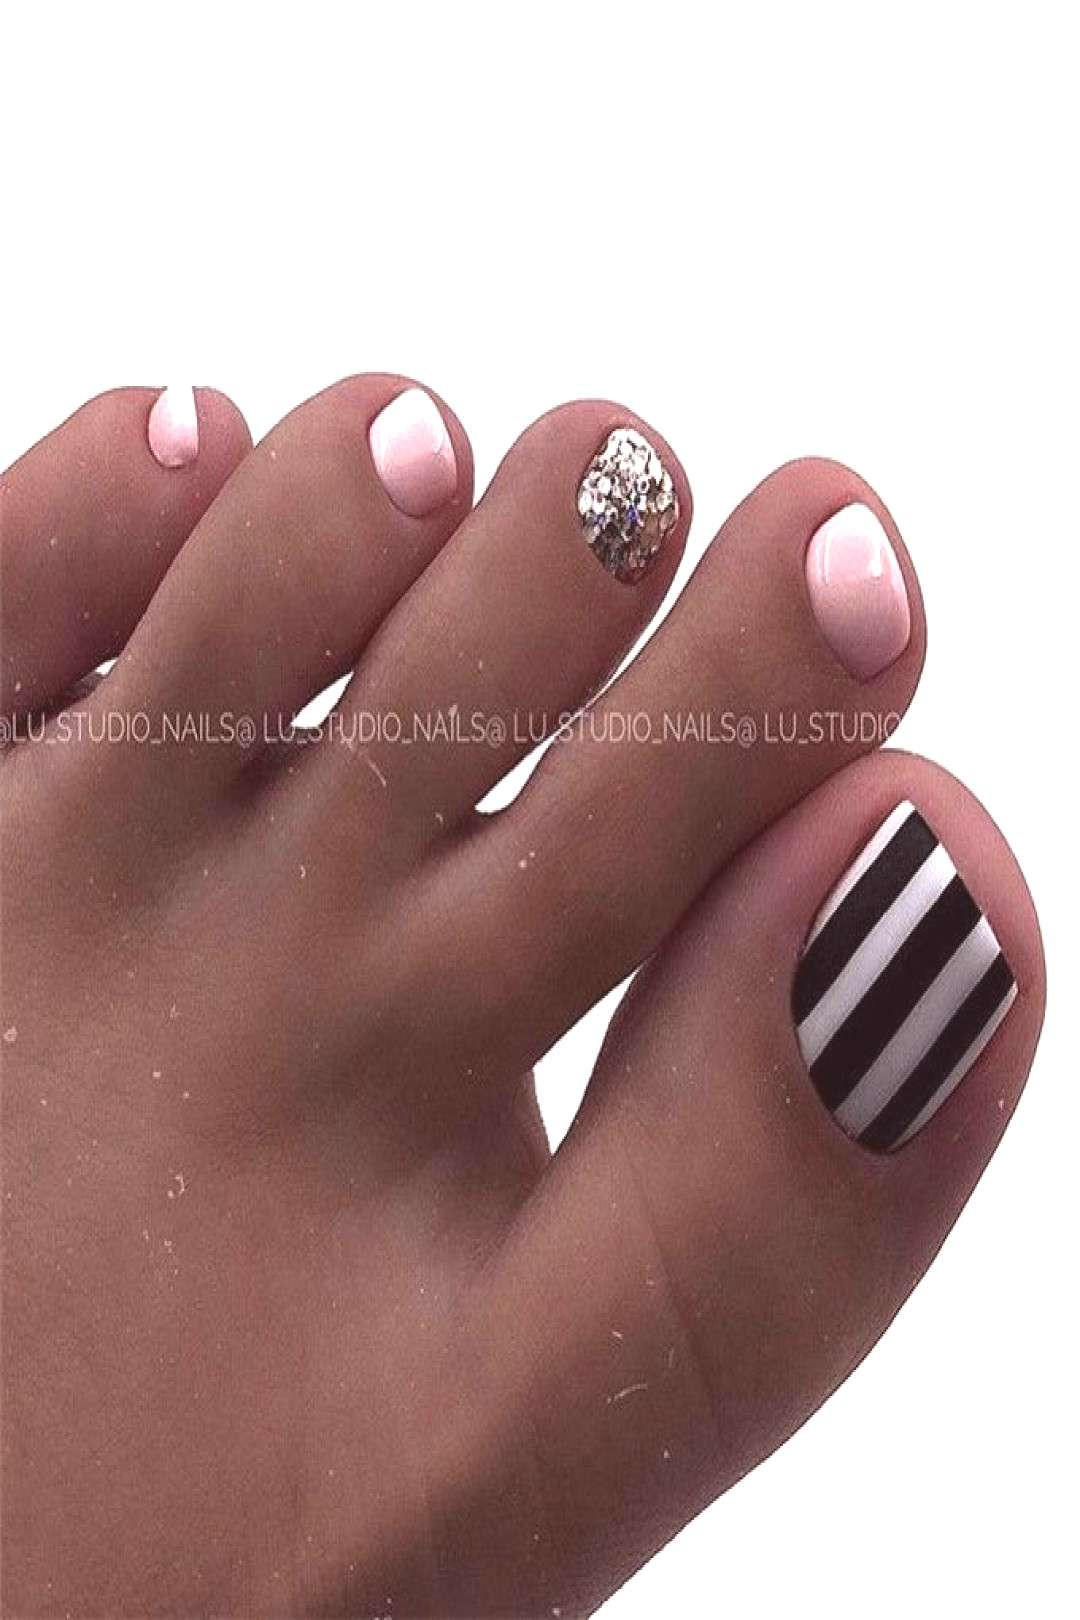 42 Trending Toe Nail Art Designs To Try In 2020 Spring And Summer Toenail design is important as y